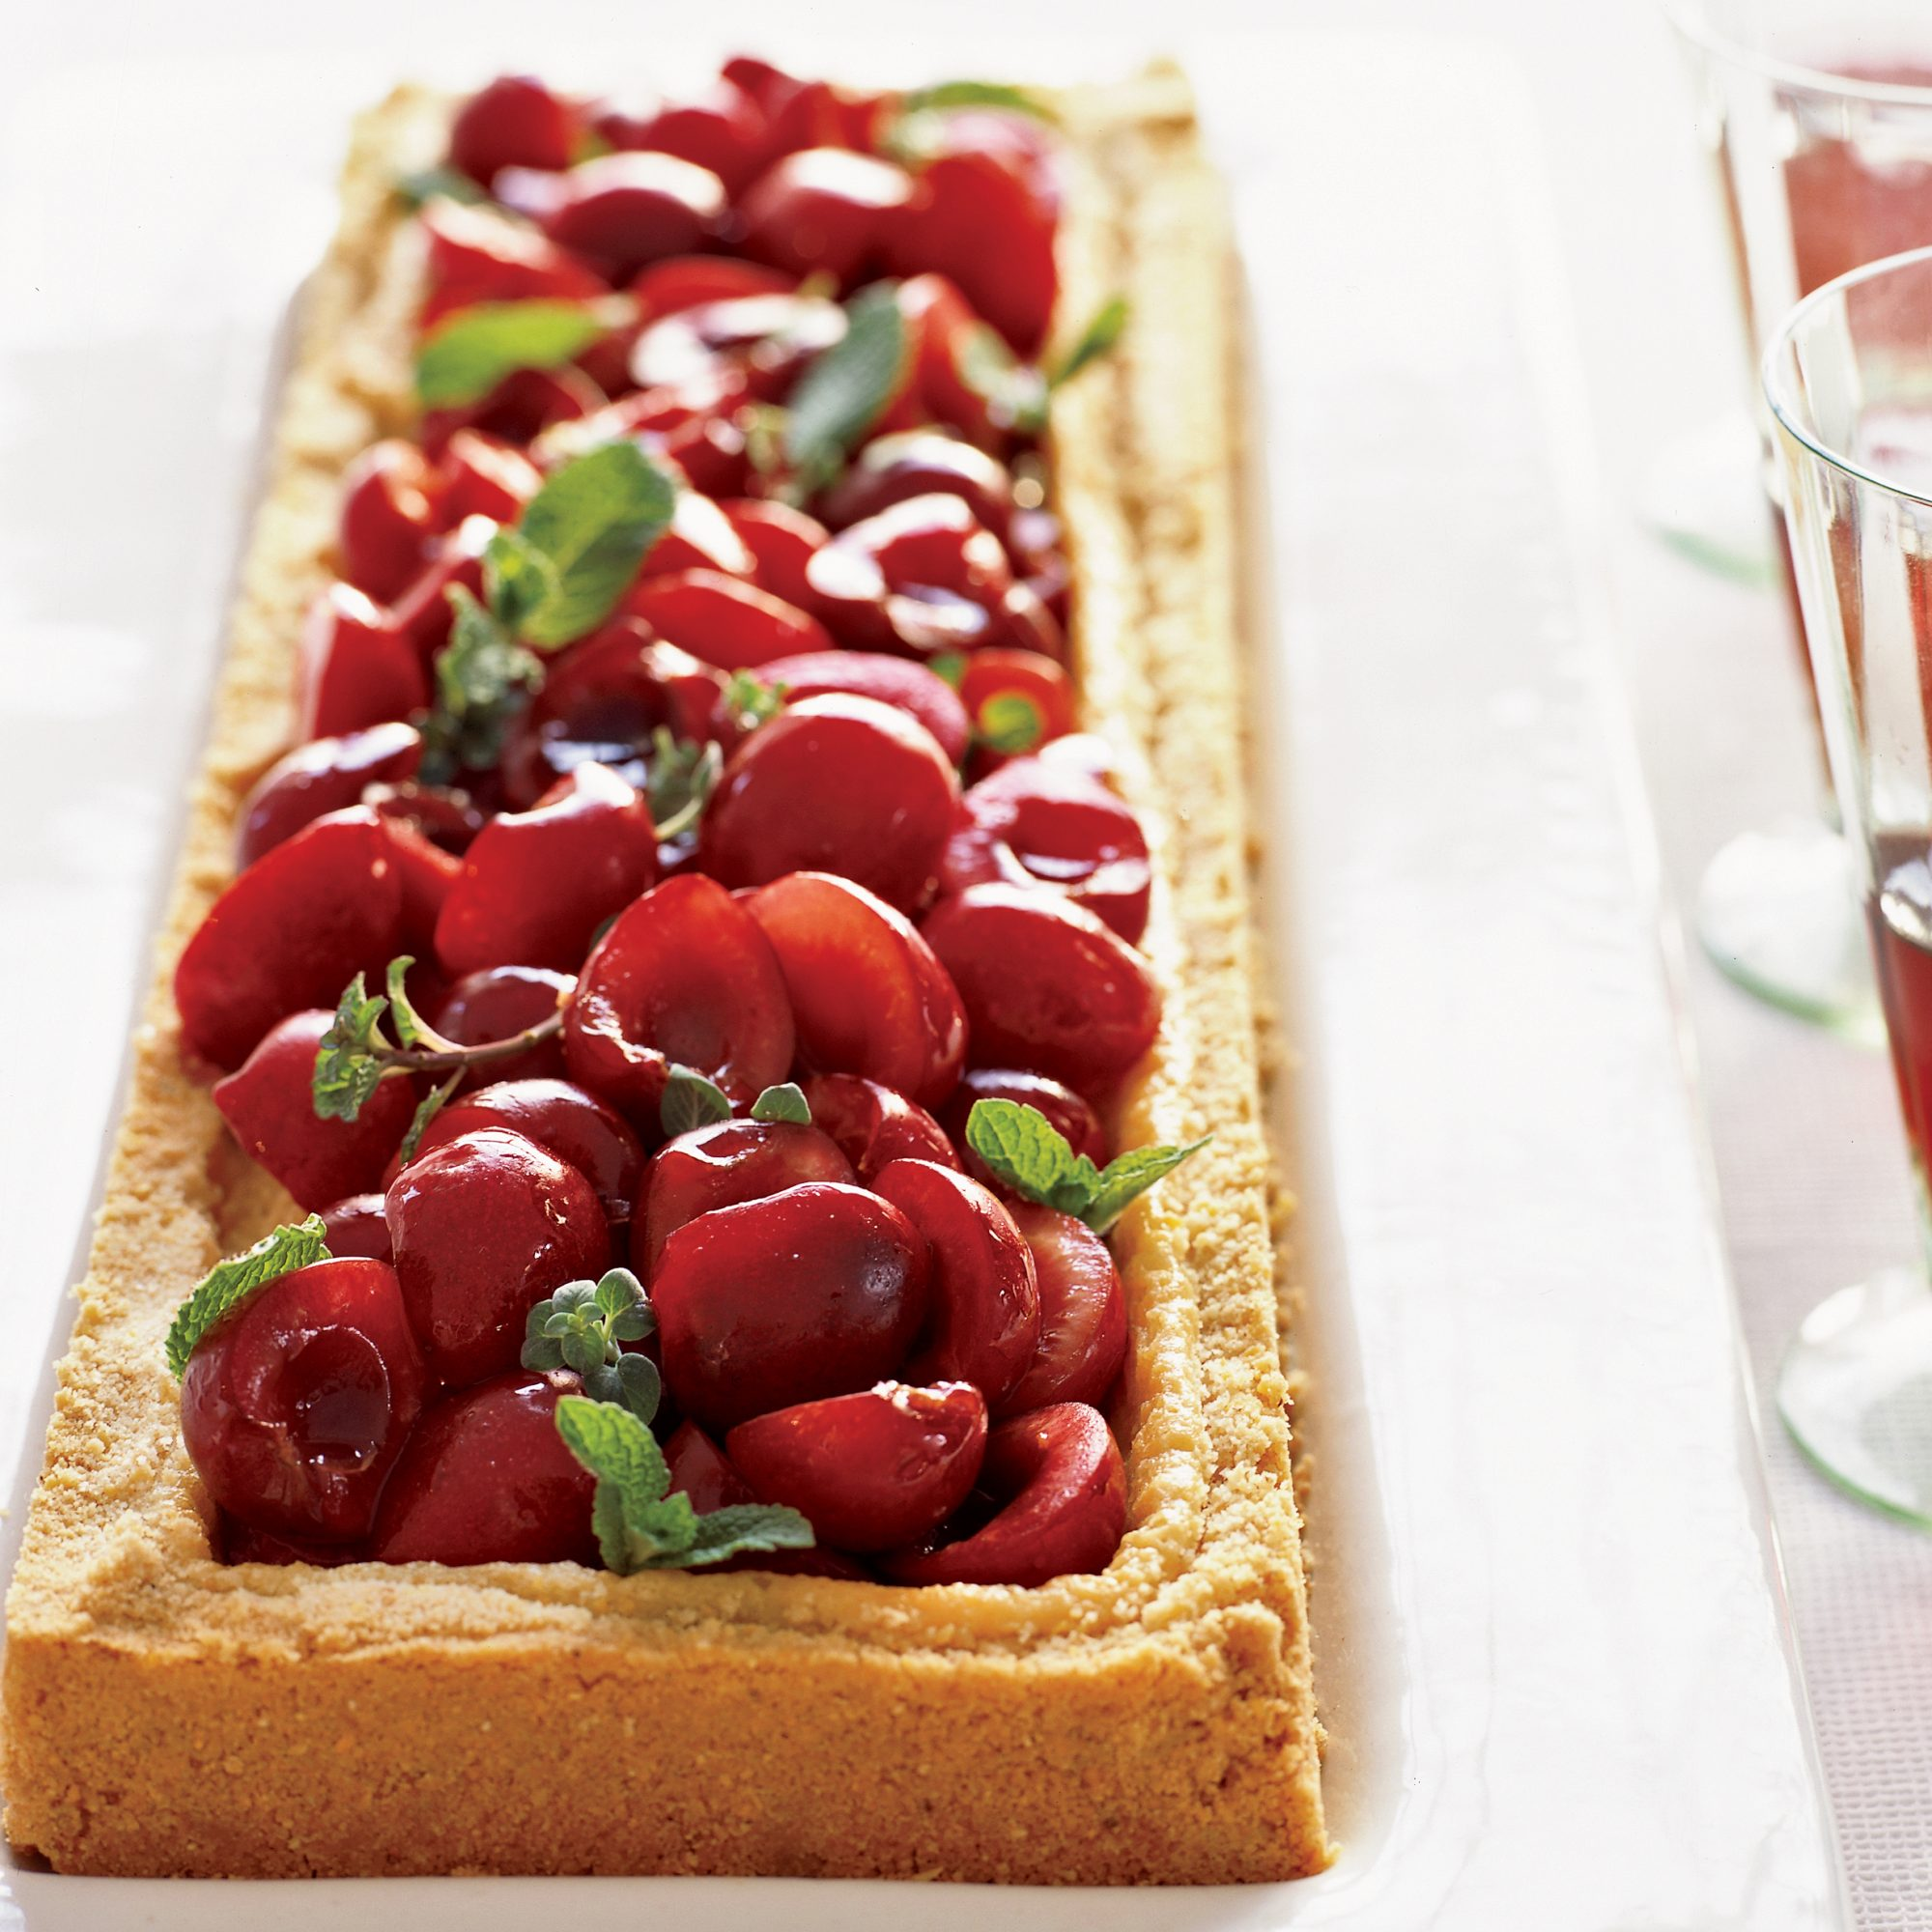 Cherry-Mascarpone Cheese Tart